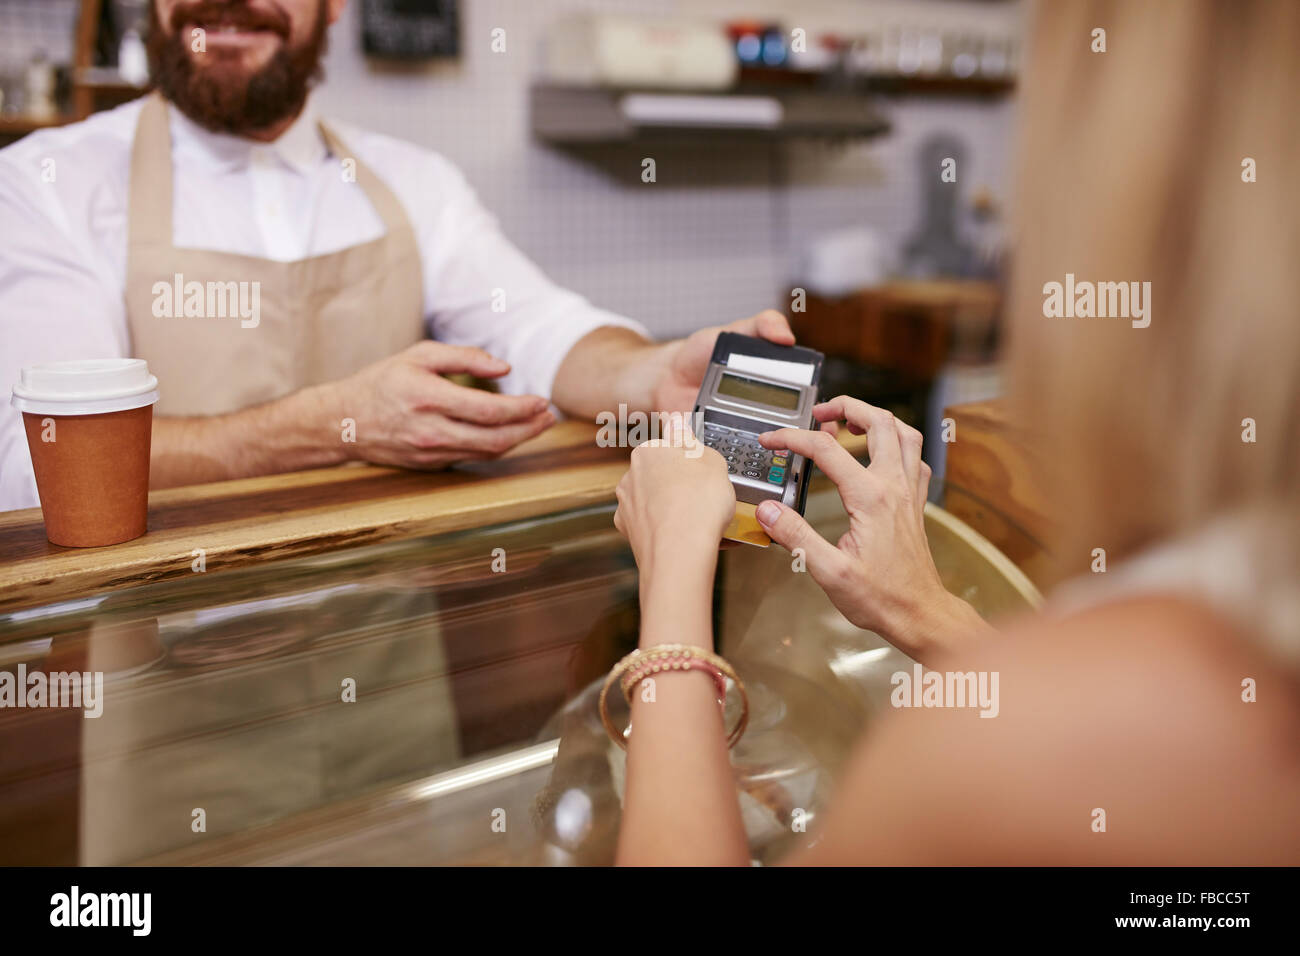 Young woman paying for coffee by credit card at coffee shop. Focus on woman hands entering security pin in credit - Stock Image